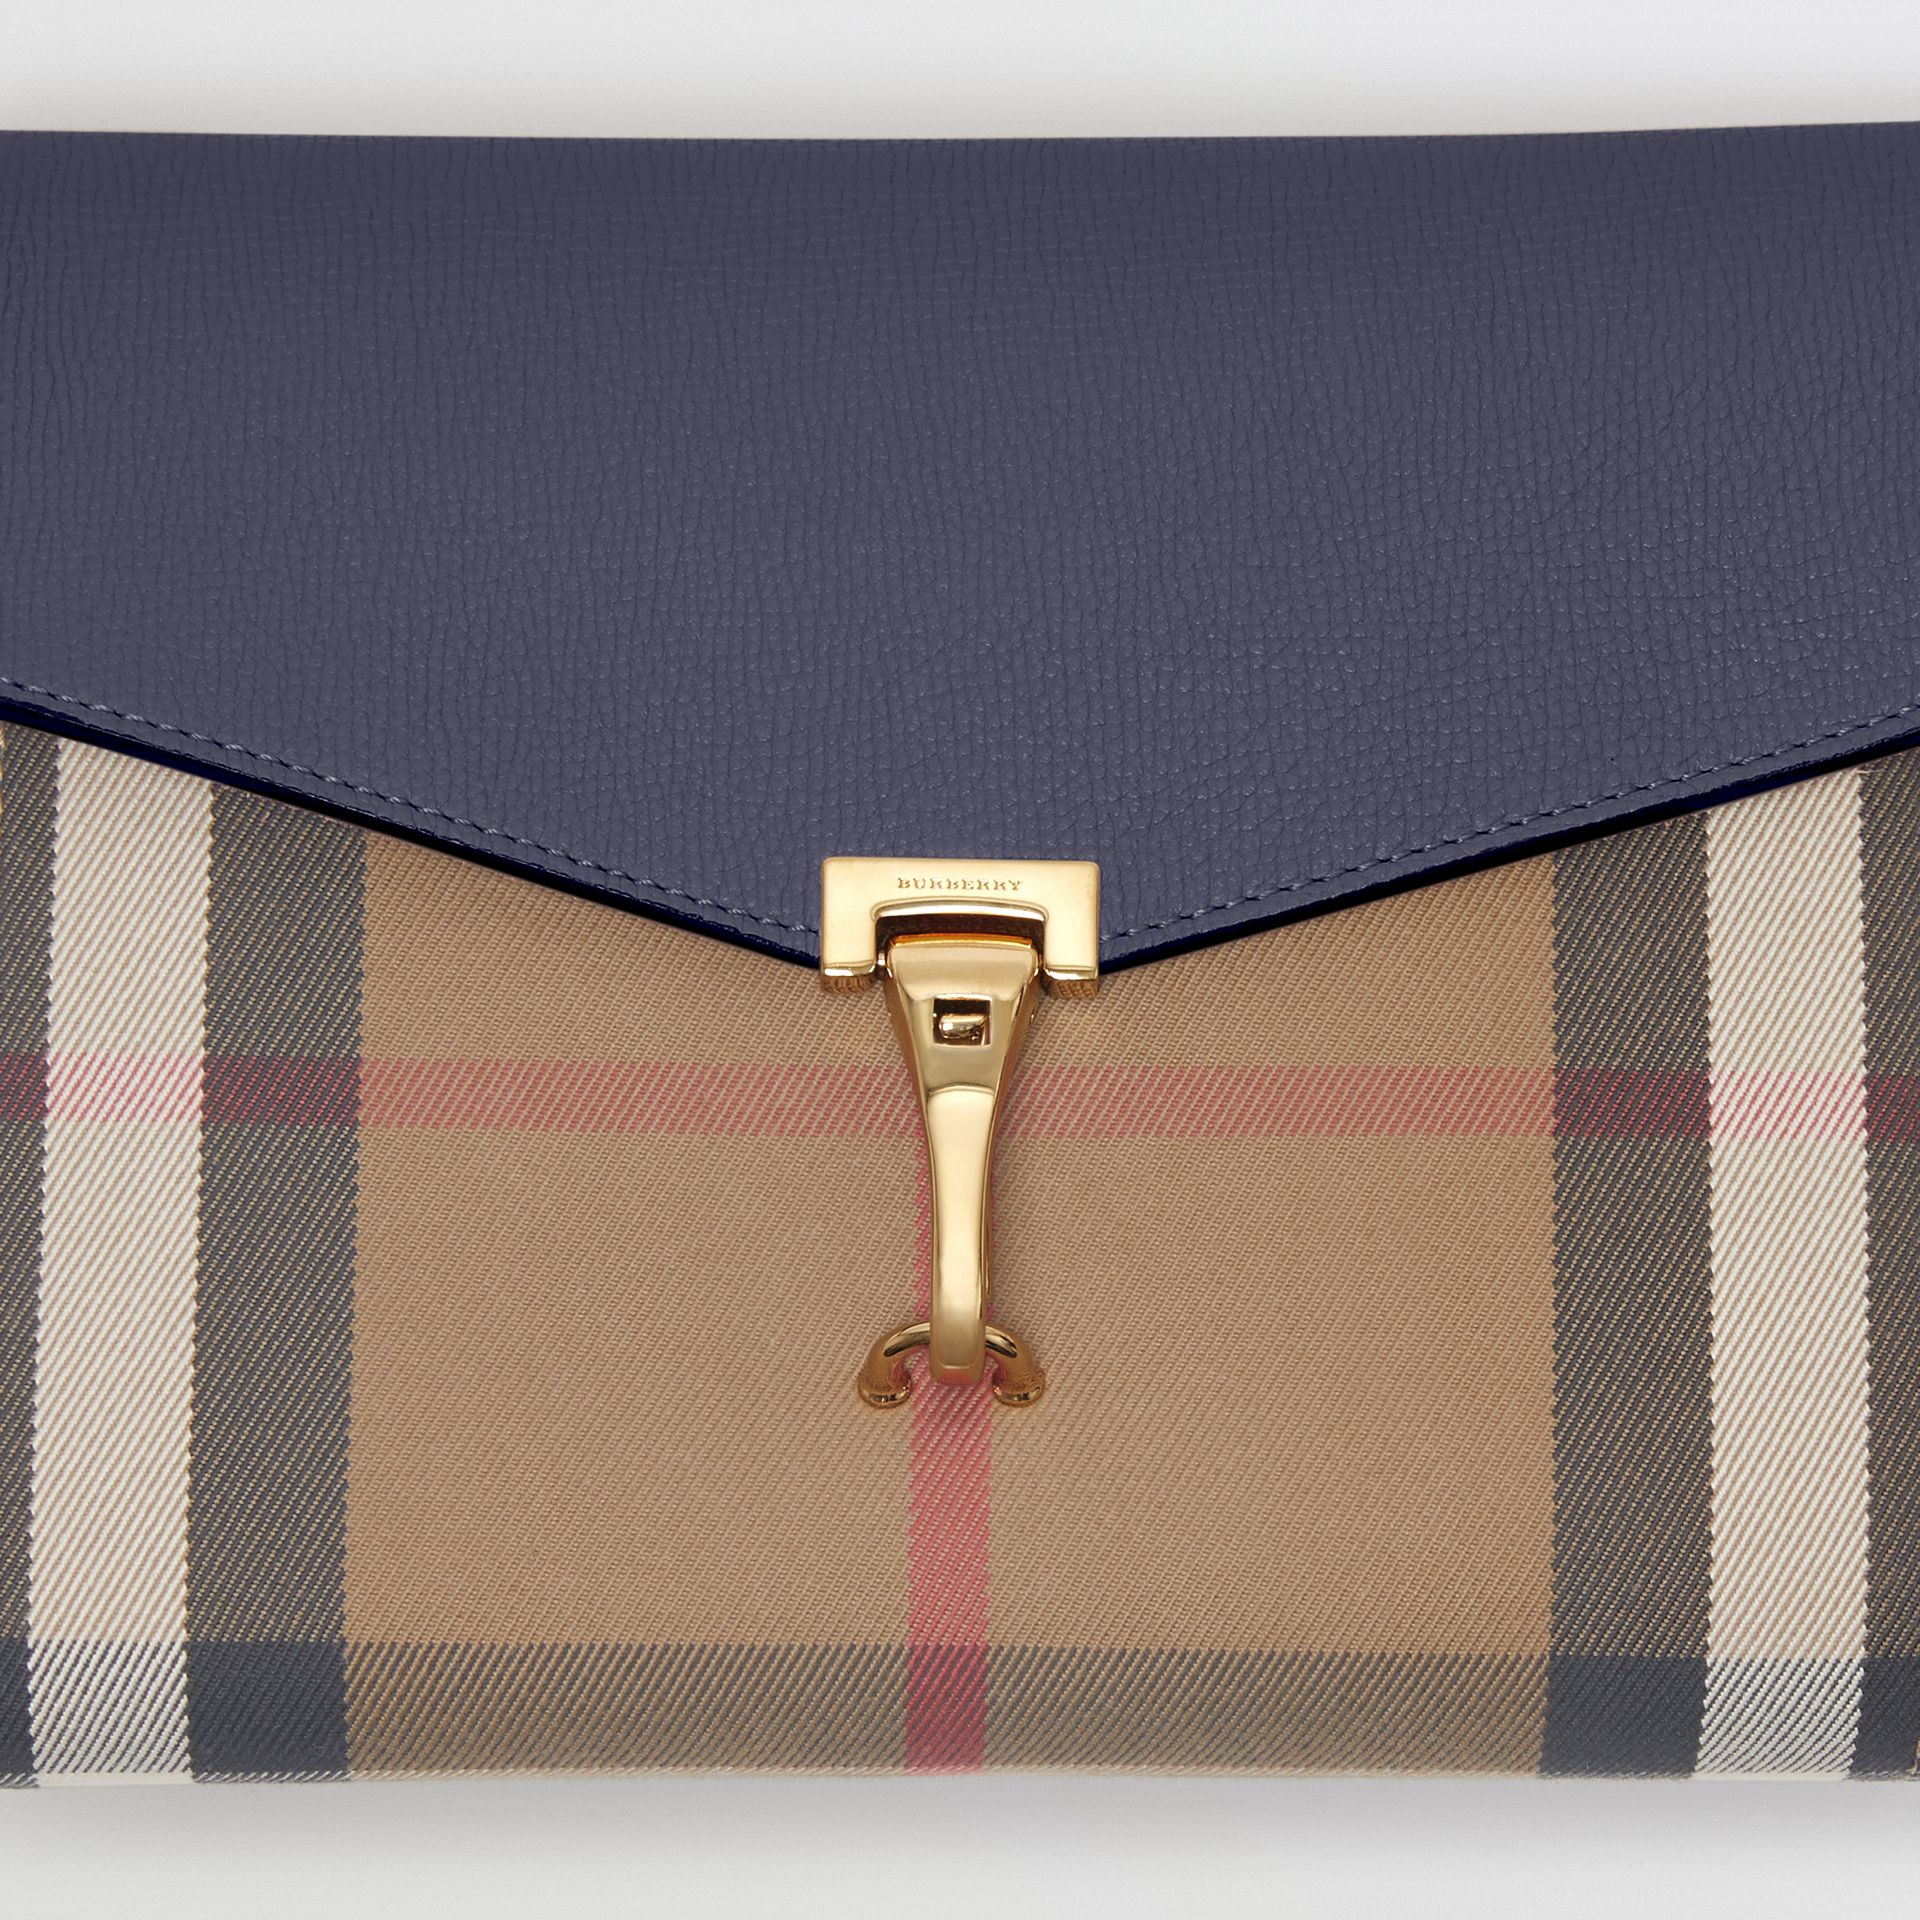 Small Leather and House Check Crossbody Bag in Ink Blue - Women | Burberry Hong Kong - gallery image 1